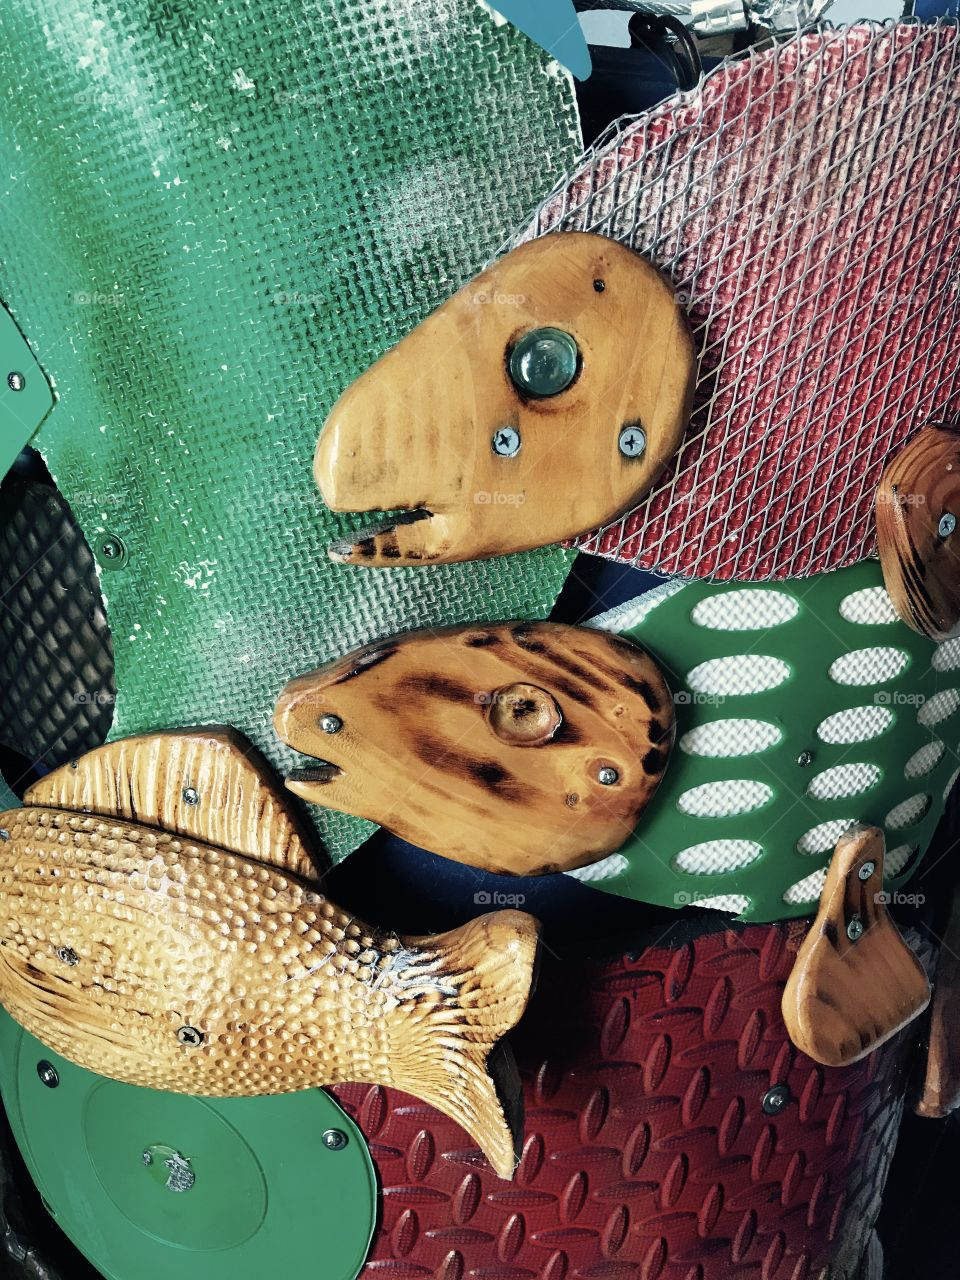 Fish art sculpture